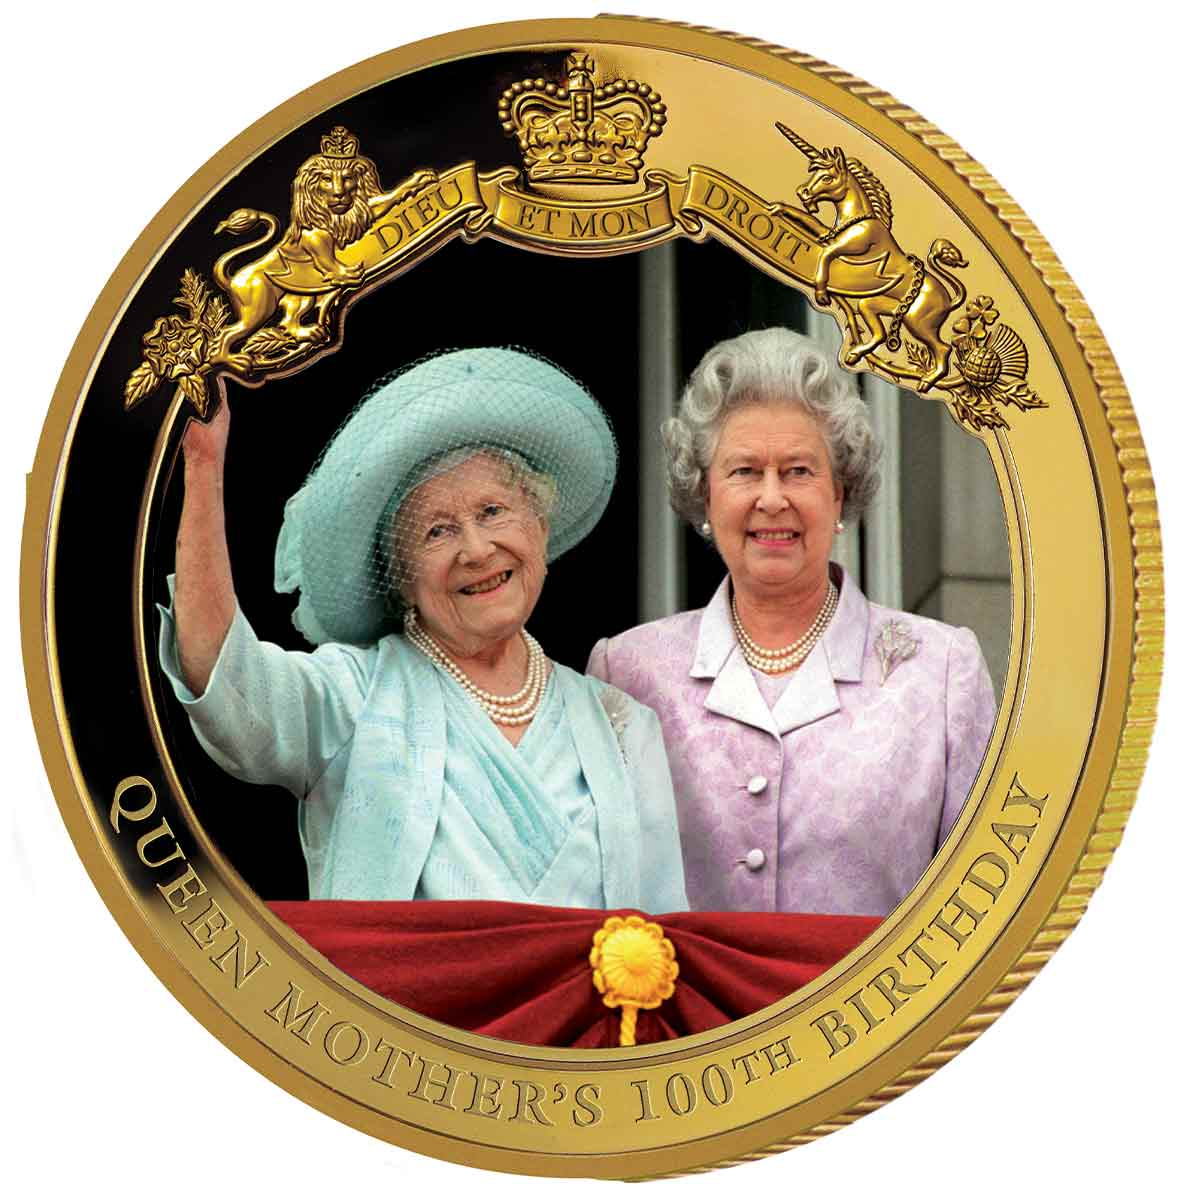 Queen Mother's 100th Birthday